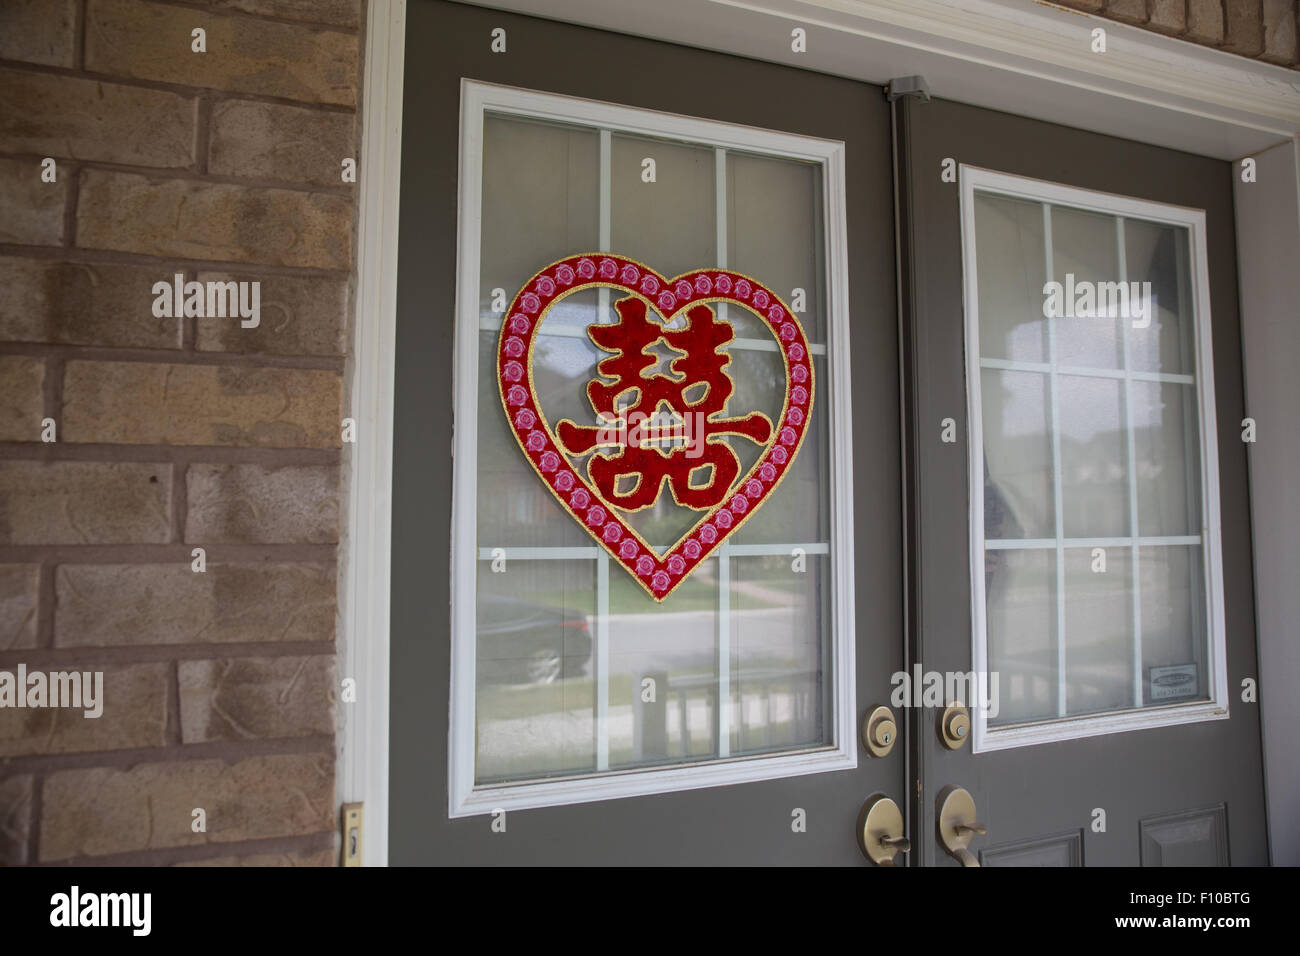 double happiness sign door chinese wedding & double happiness sign door chinese wedding Stock Photo: 86675808 - Alamy